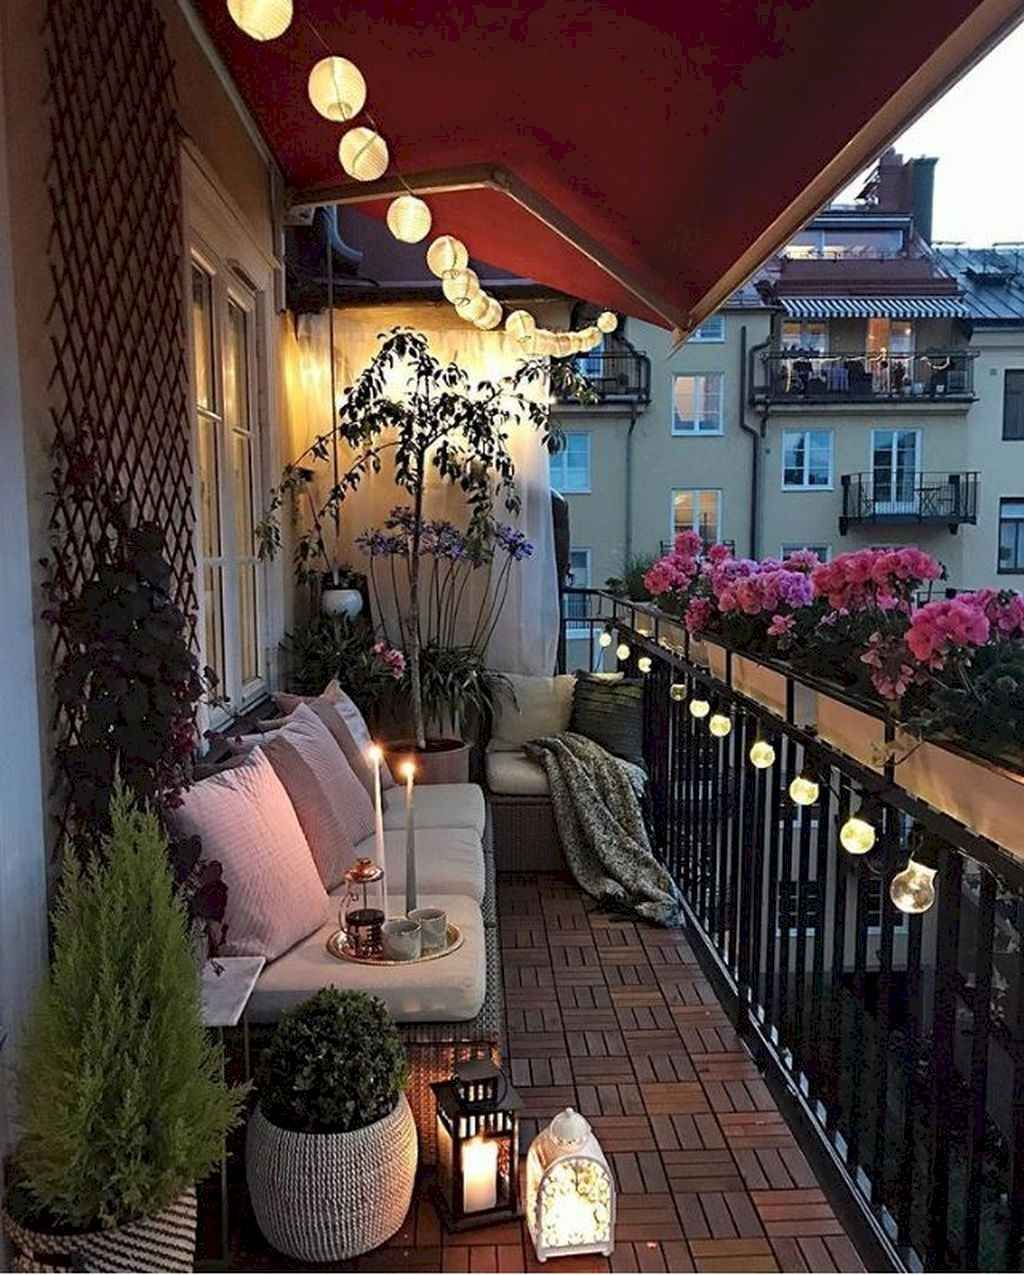 Gorgeous 80 Cozy Apartment Balcony Decorating Ideas on A Budget source link : de… Balcony